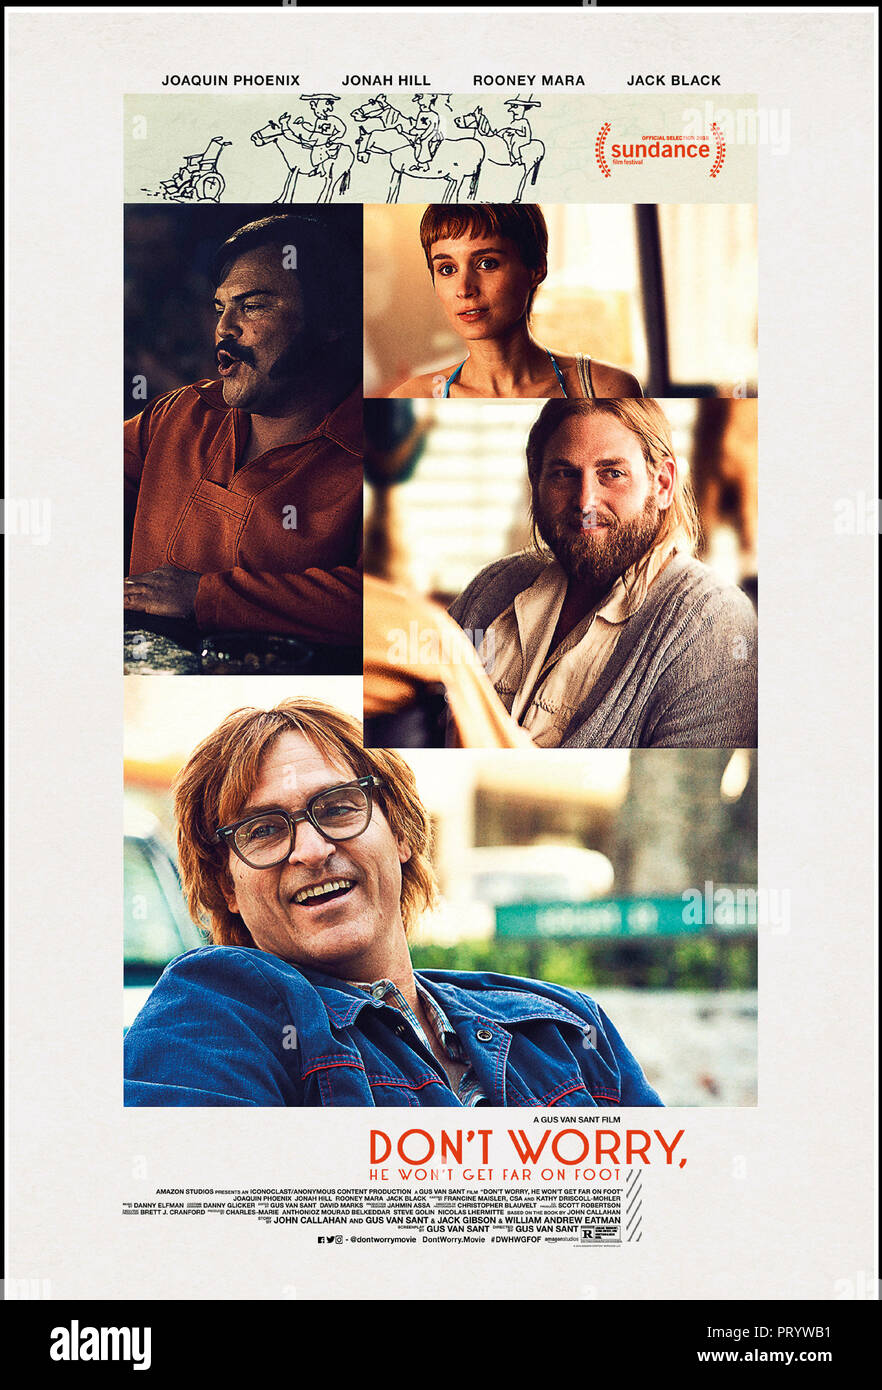 Prod DB © Anonymous Content - Big Indie Pictures - Iconoclast / DR DON'T WORRY, HE WON'T GET FAR ON FOOT de Gus Van Sant 2018 USA affiche americaine a - Stock Image